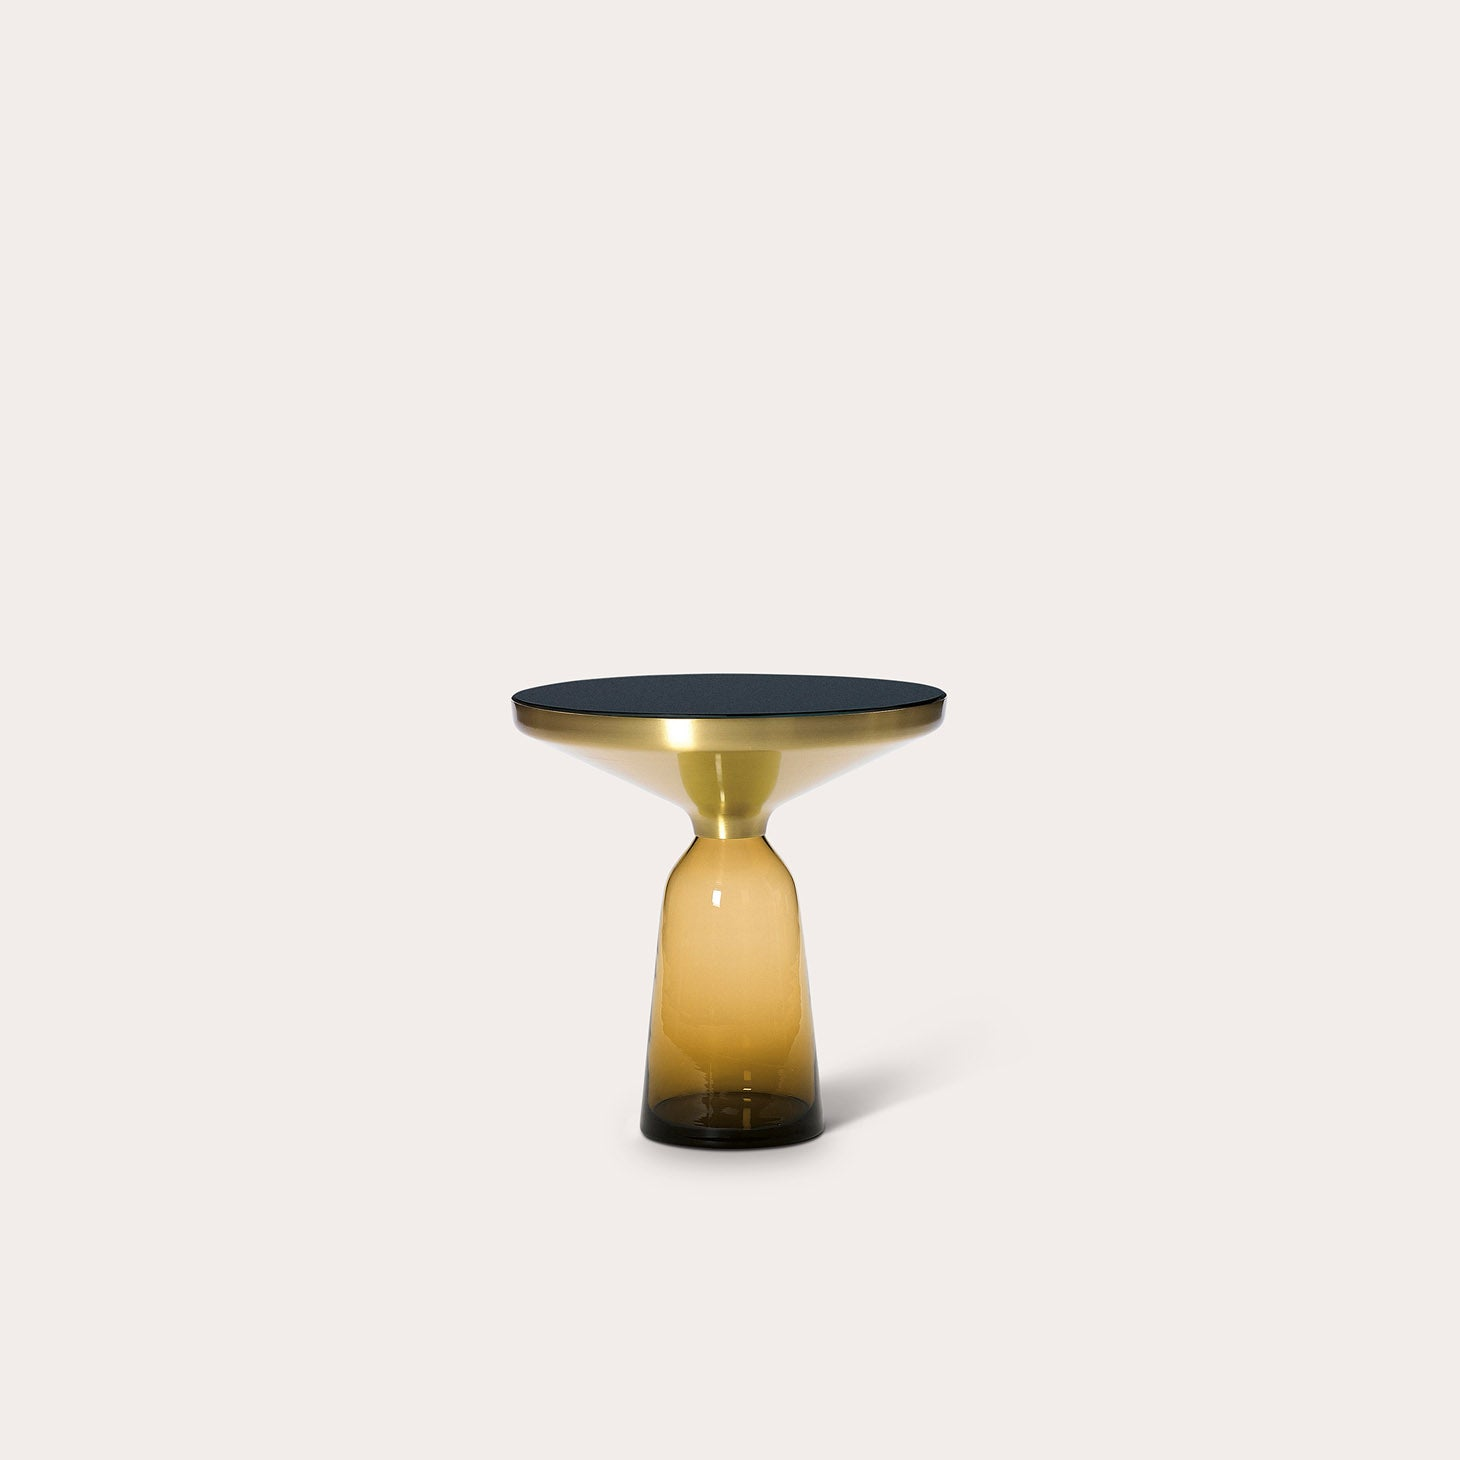 Bell Table Tables Sebastian Herkner Designer Furniture Sku: 001-230-10216